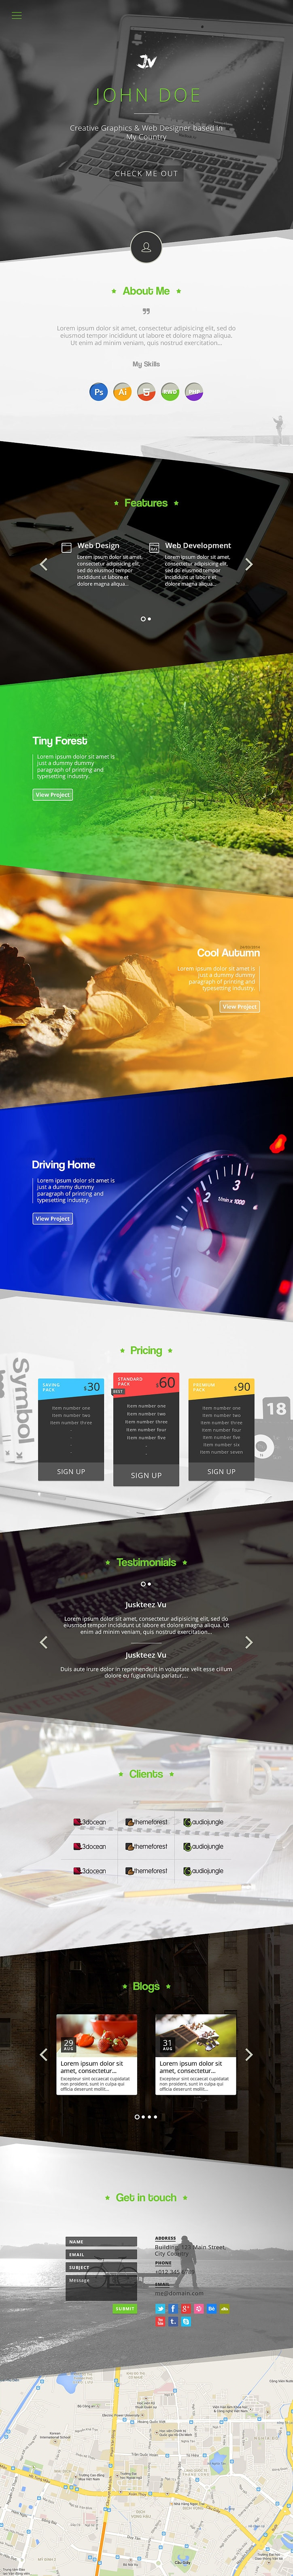 Bangoes One Page Portfolio Free Template PSD